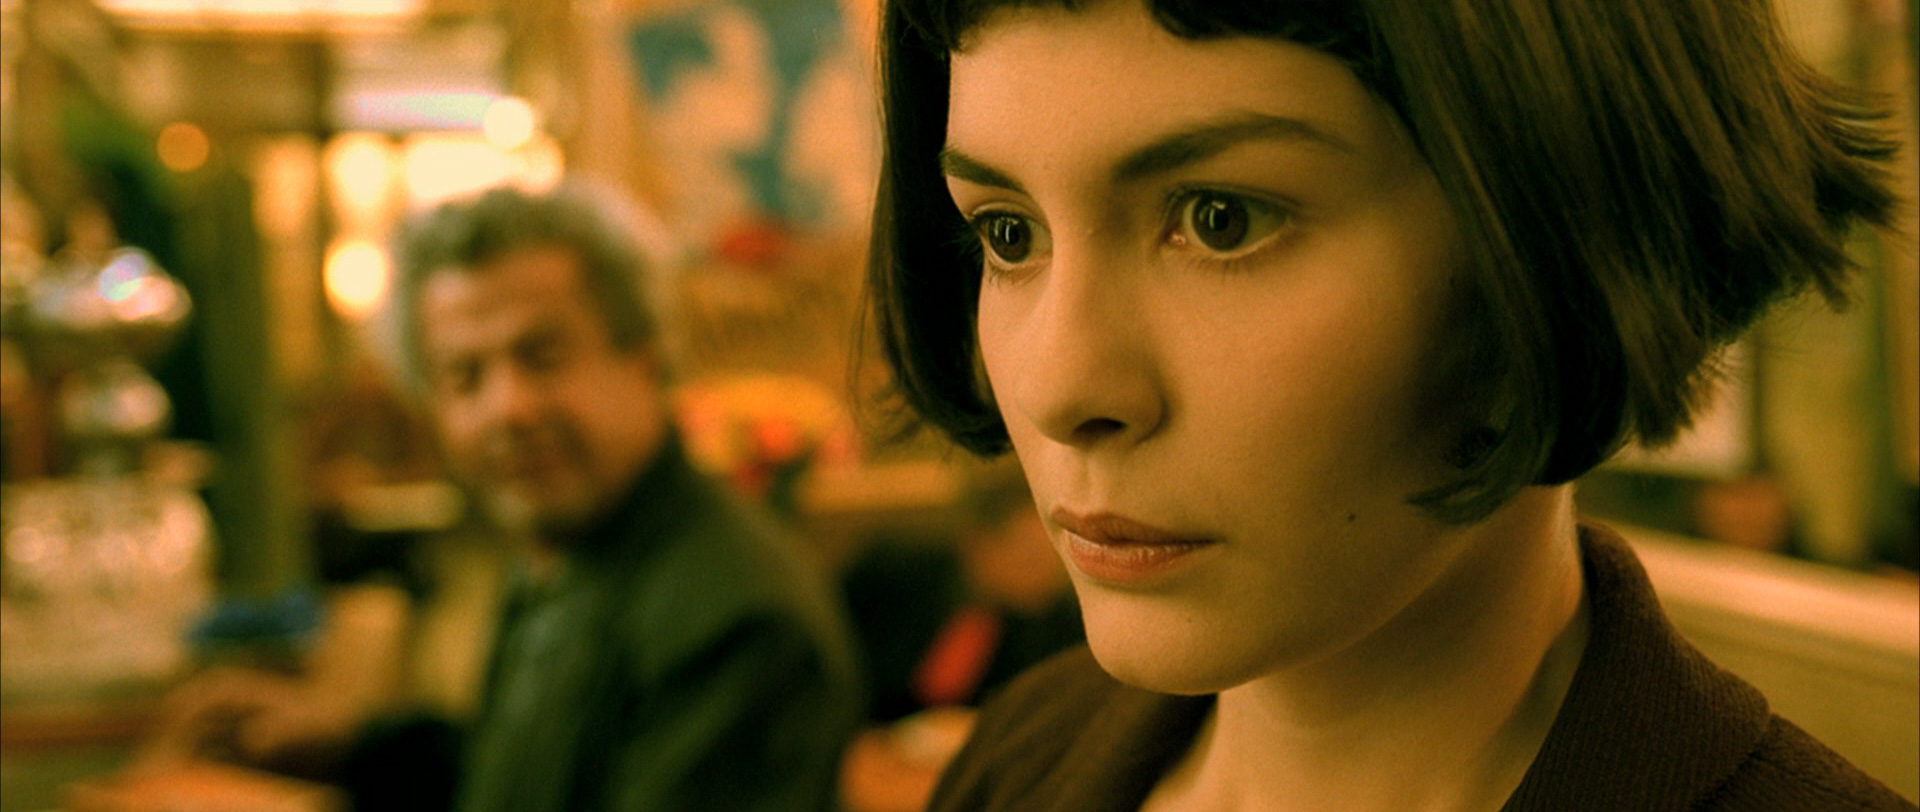 amelie interesting premise and beautiful cinematography Cinematography by bruno delbonnel cbs news bruno delbonnel's evocative cinematography depicting the magical-realist story, using heightened and selective coloring, different camera speeds and humorous digital effects, made montmartre and environs come alive onscreen as never before.